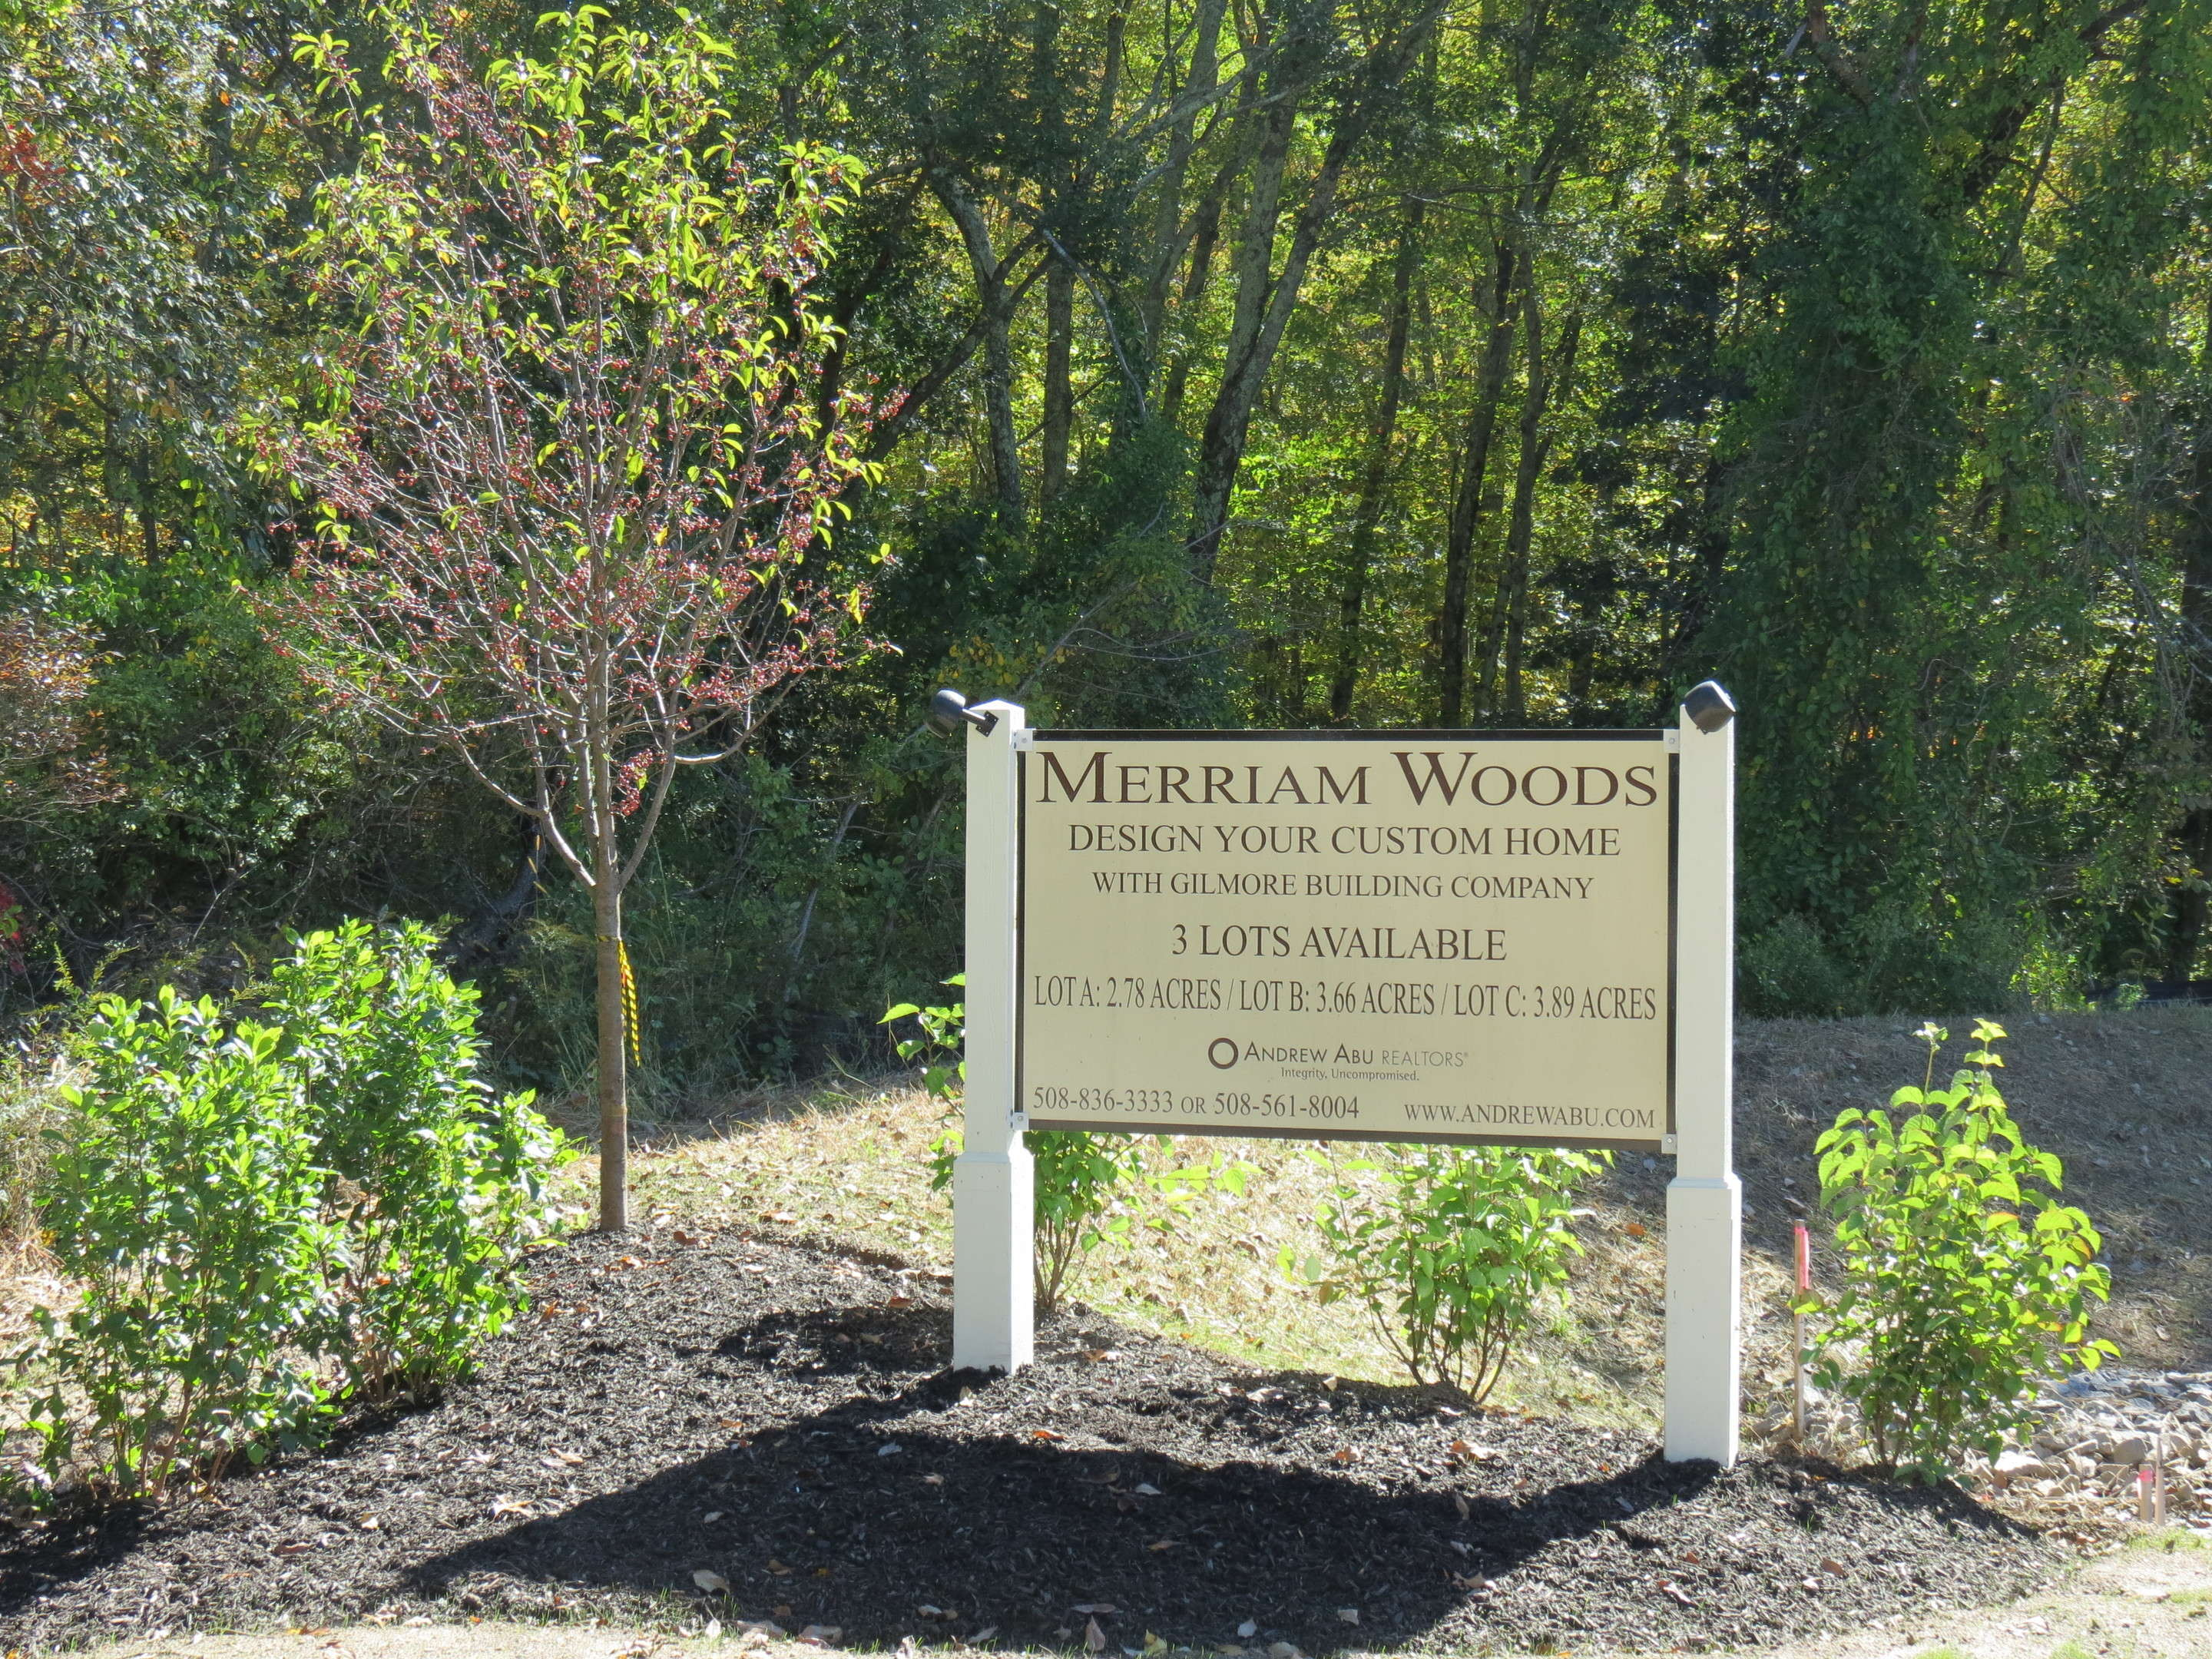 Merriam Woods Grafton MA welcome sign